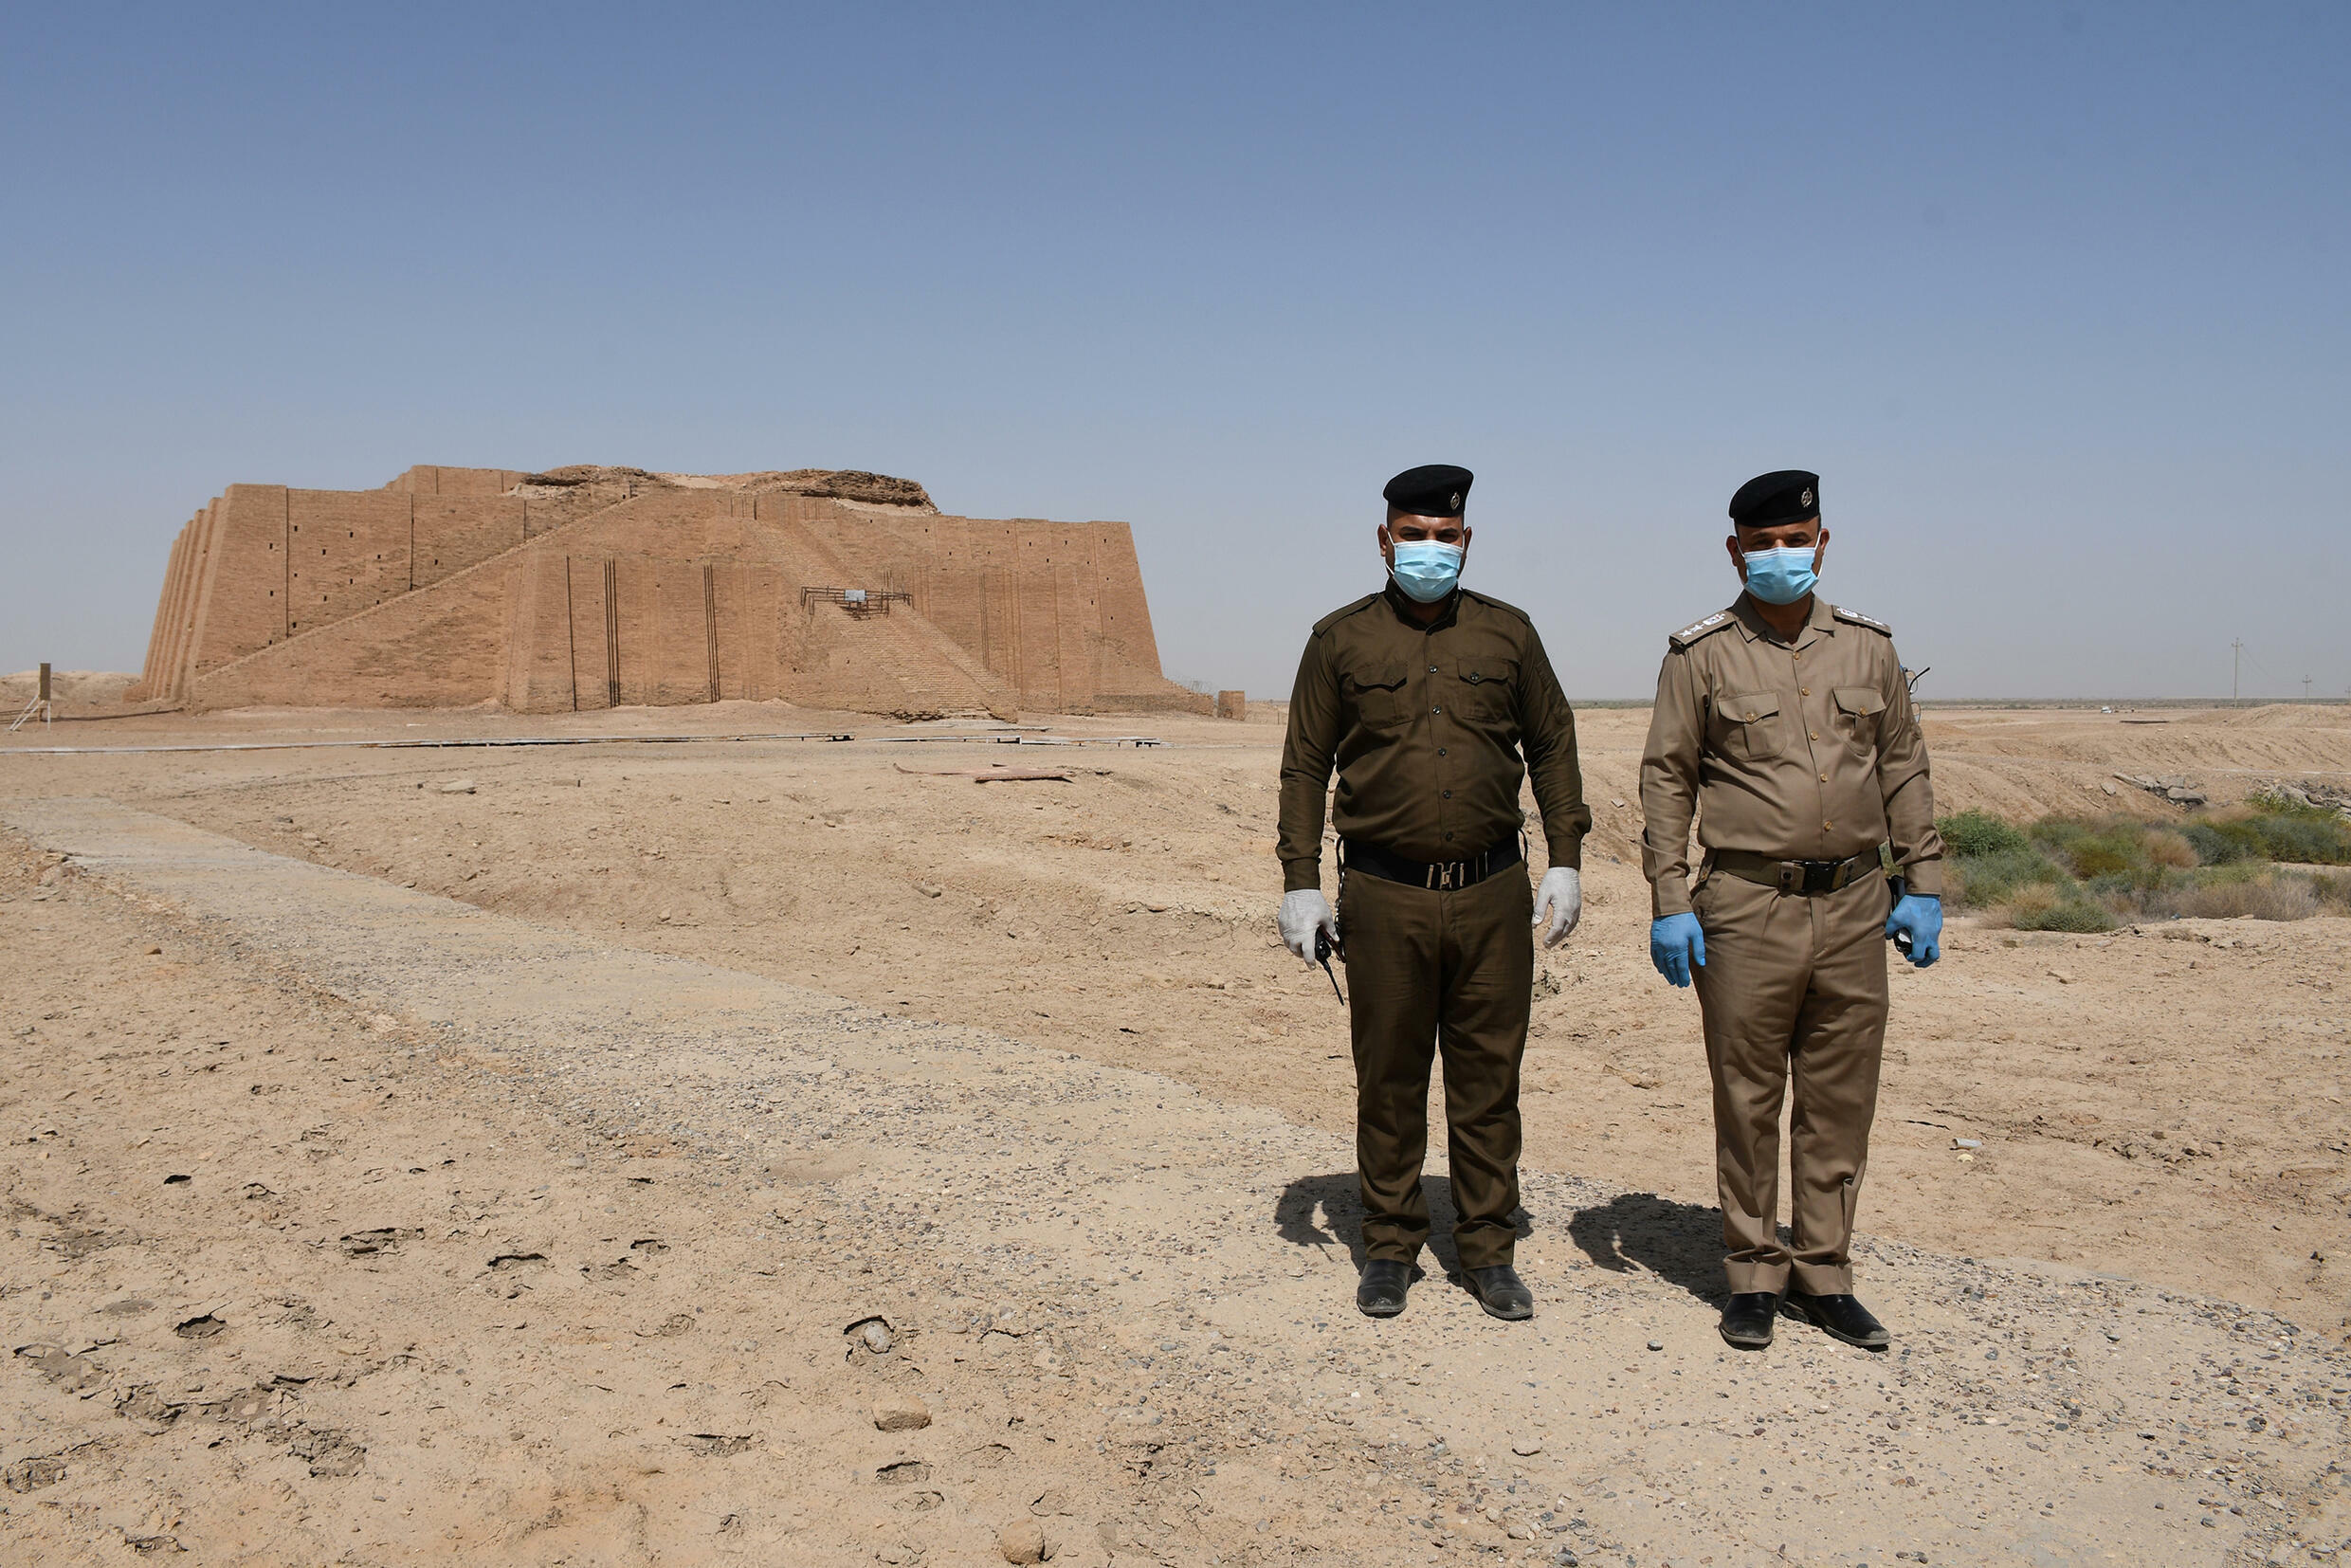 Iraq has several archaeological sites, including the Temple of the Great Ziggurat, dedicated to the Sumerian moon god Nanna and dating from around 2100 BC.